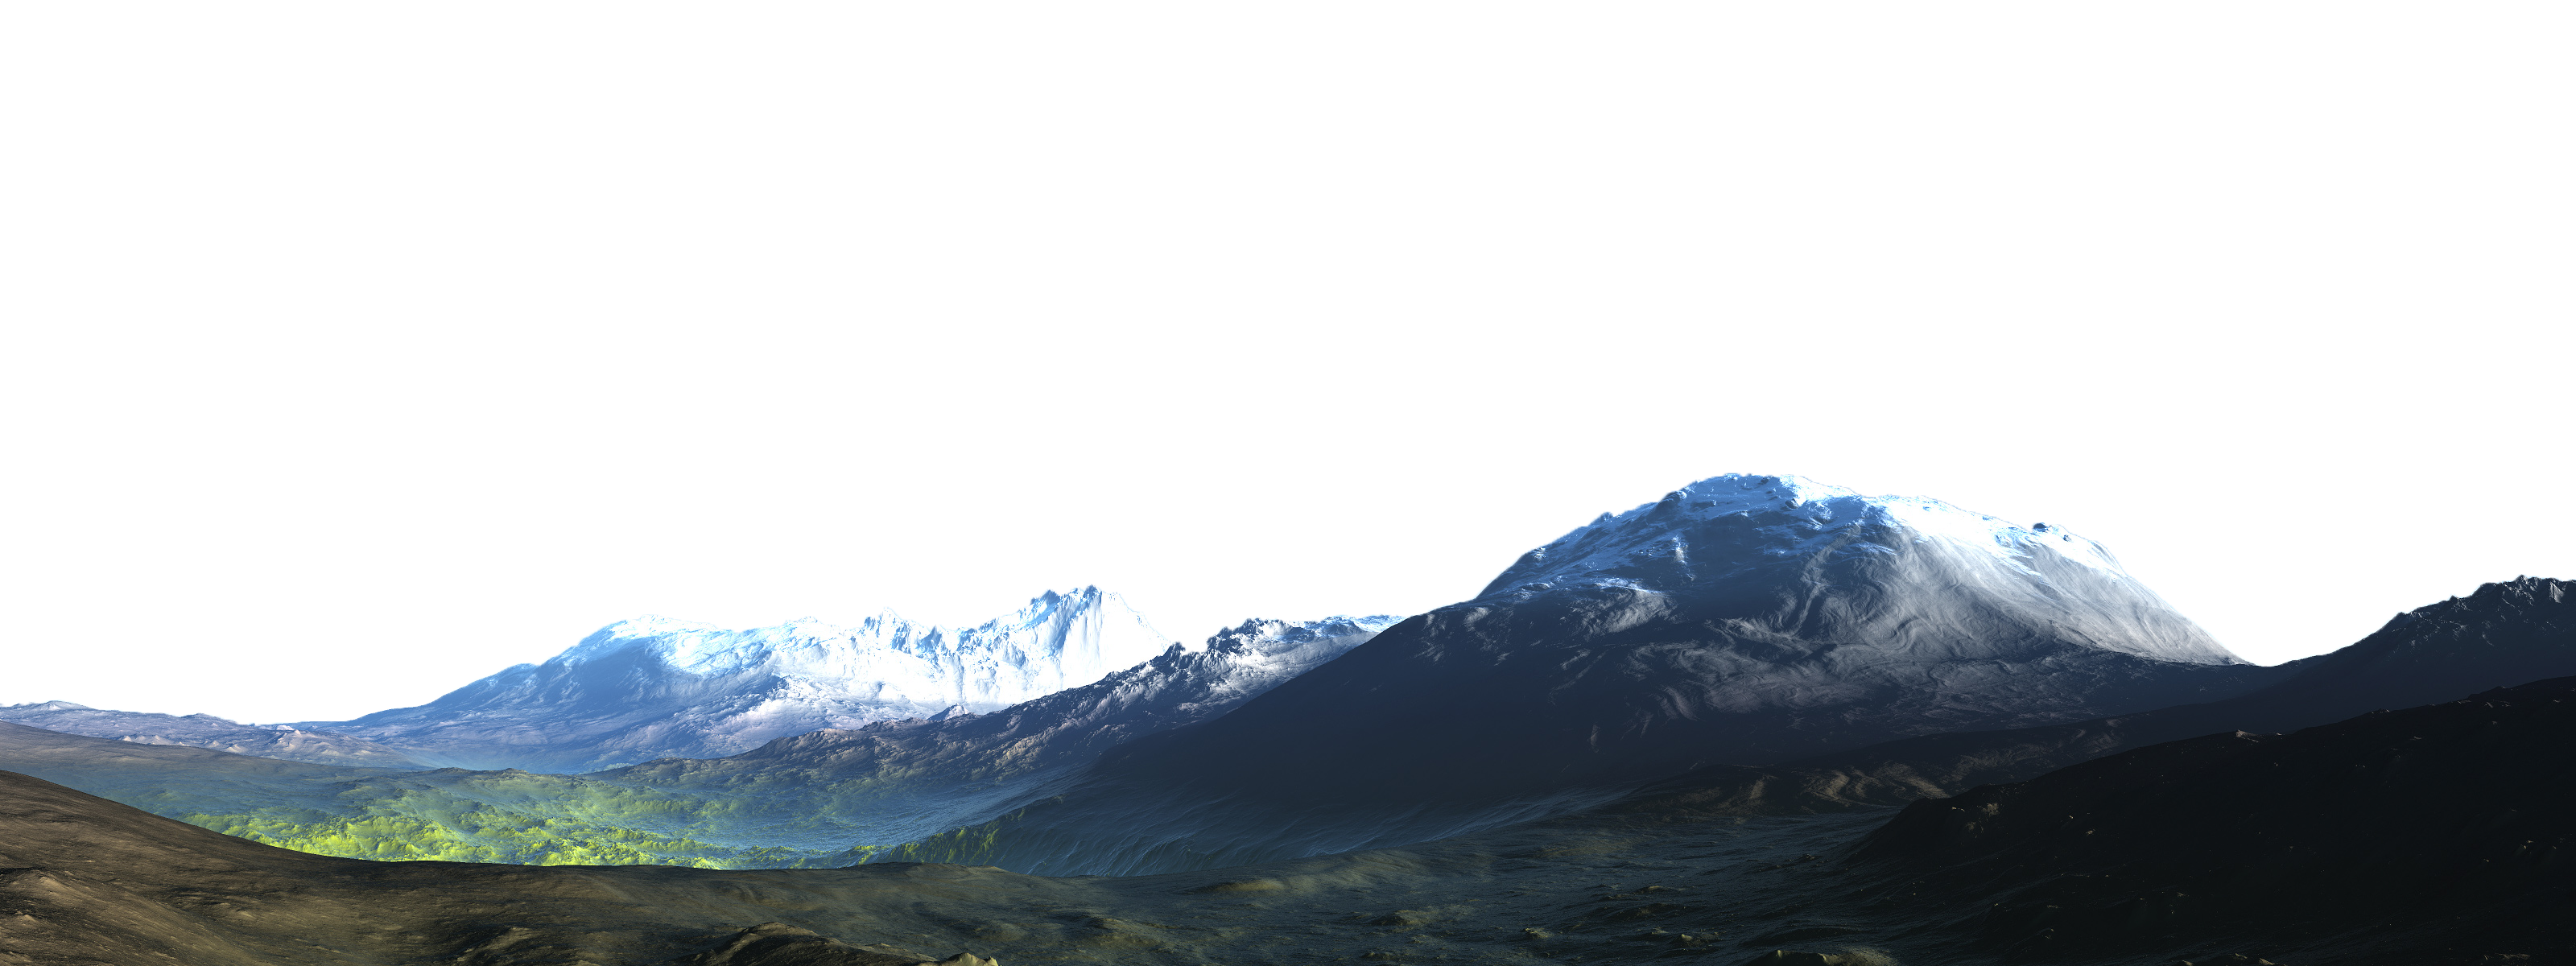 Png transparent images all. Clipart mountain mountain range